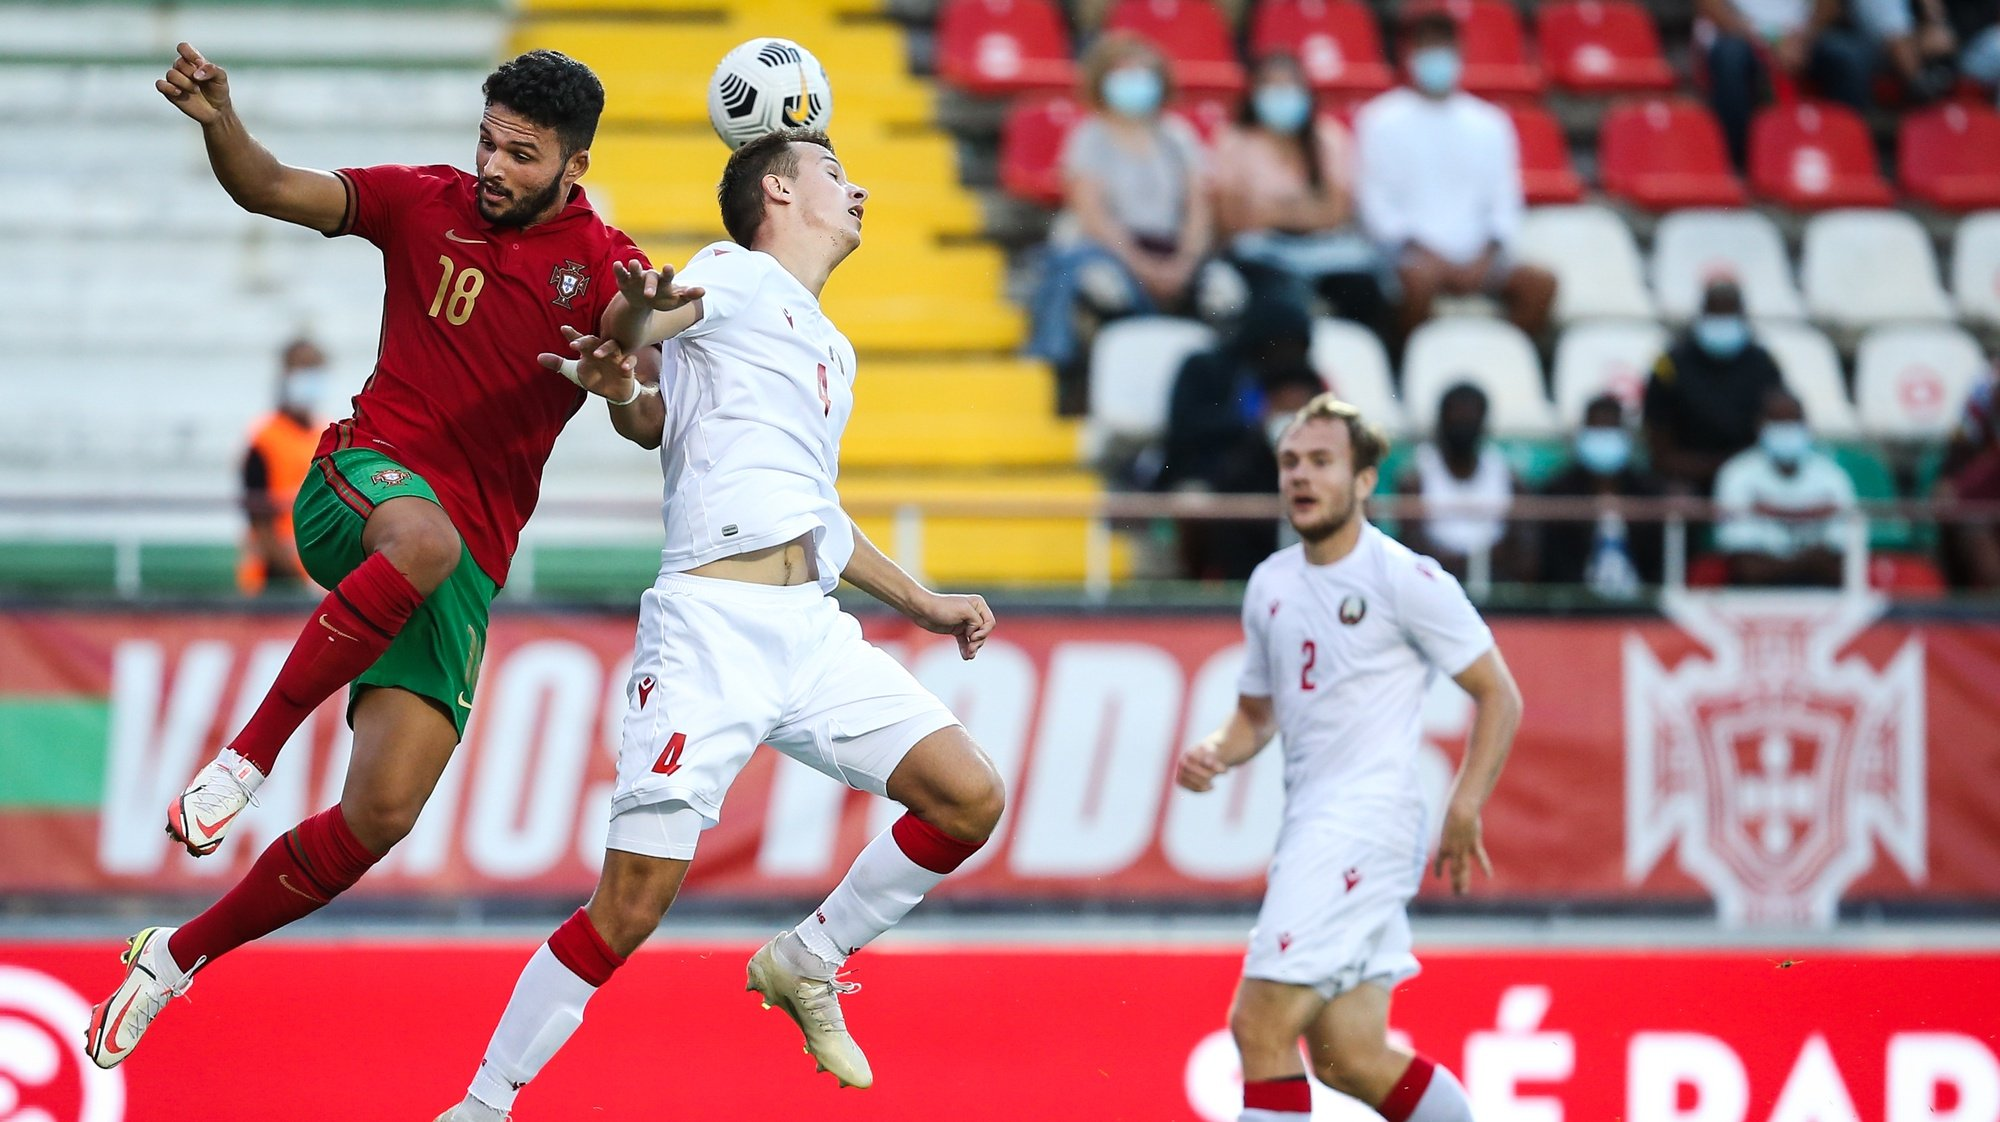 Portugal's Gonçalo Ramos (L) in action against Belarus Roman Vegerya (C) during the Euro2023 Under-21 qualifying soccer match between Portugal and Belarus at José Gomes Stadium in Lisbon, Portugal, 06 September 2021. RODRIGO ANTUNES/LUSA